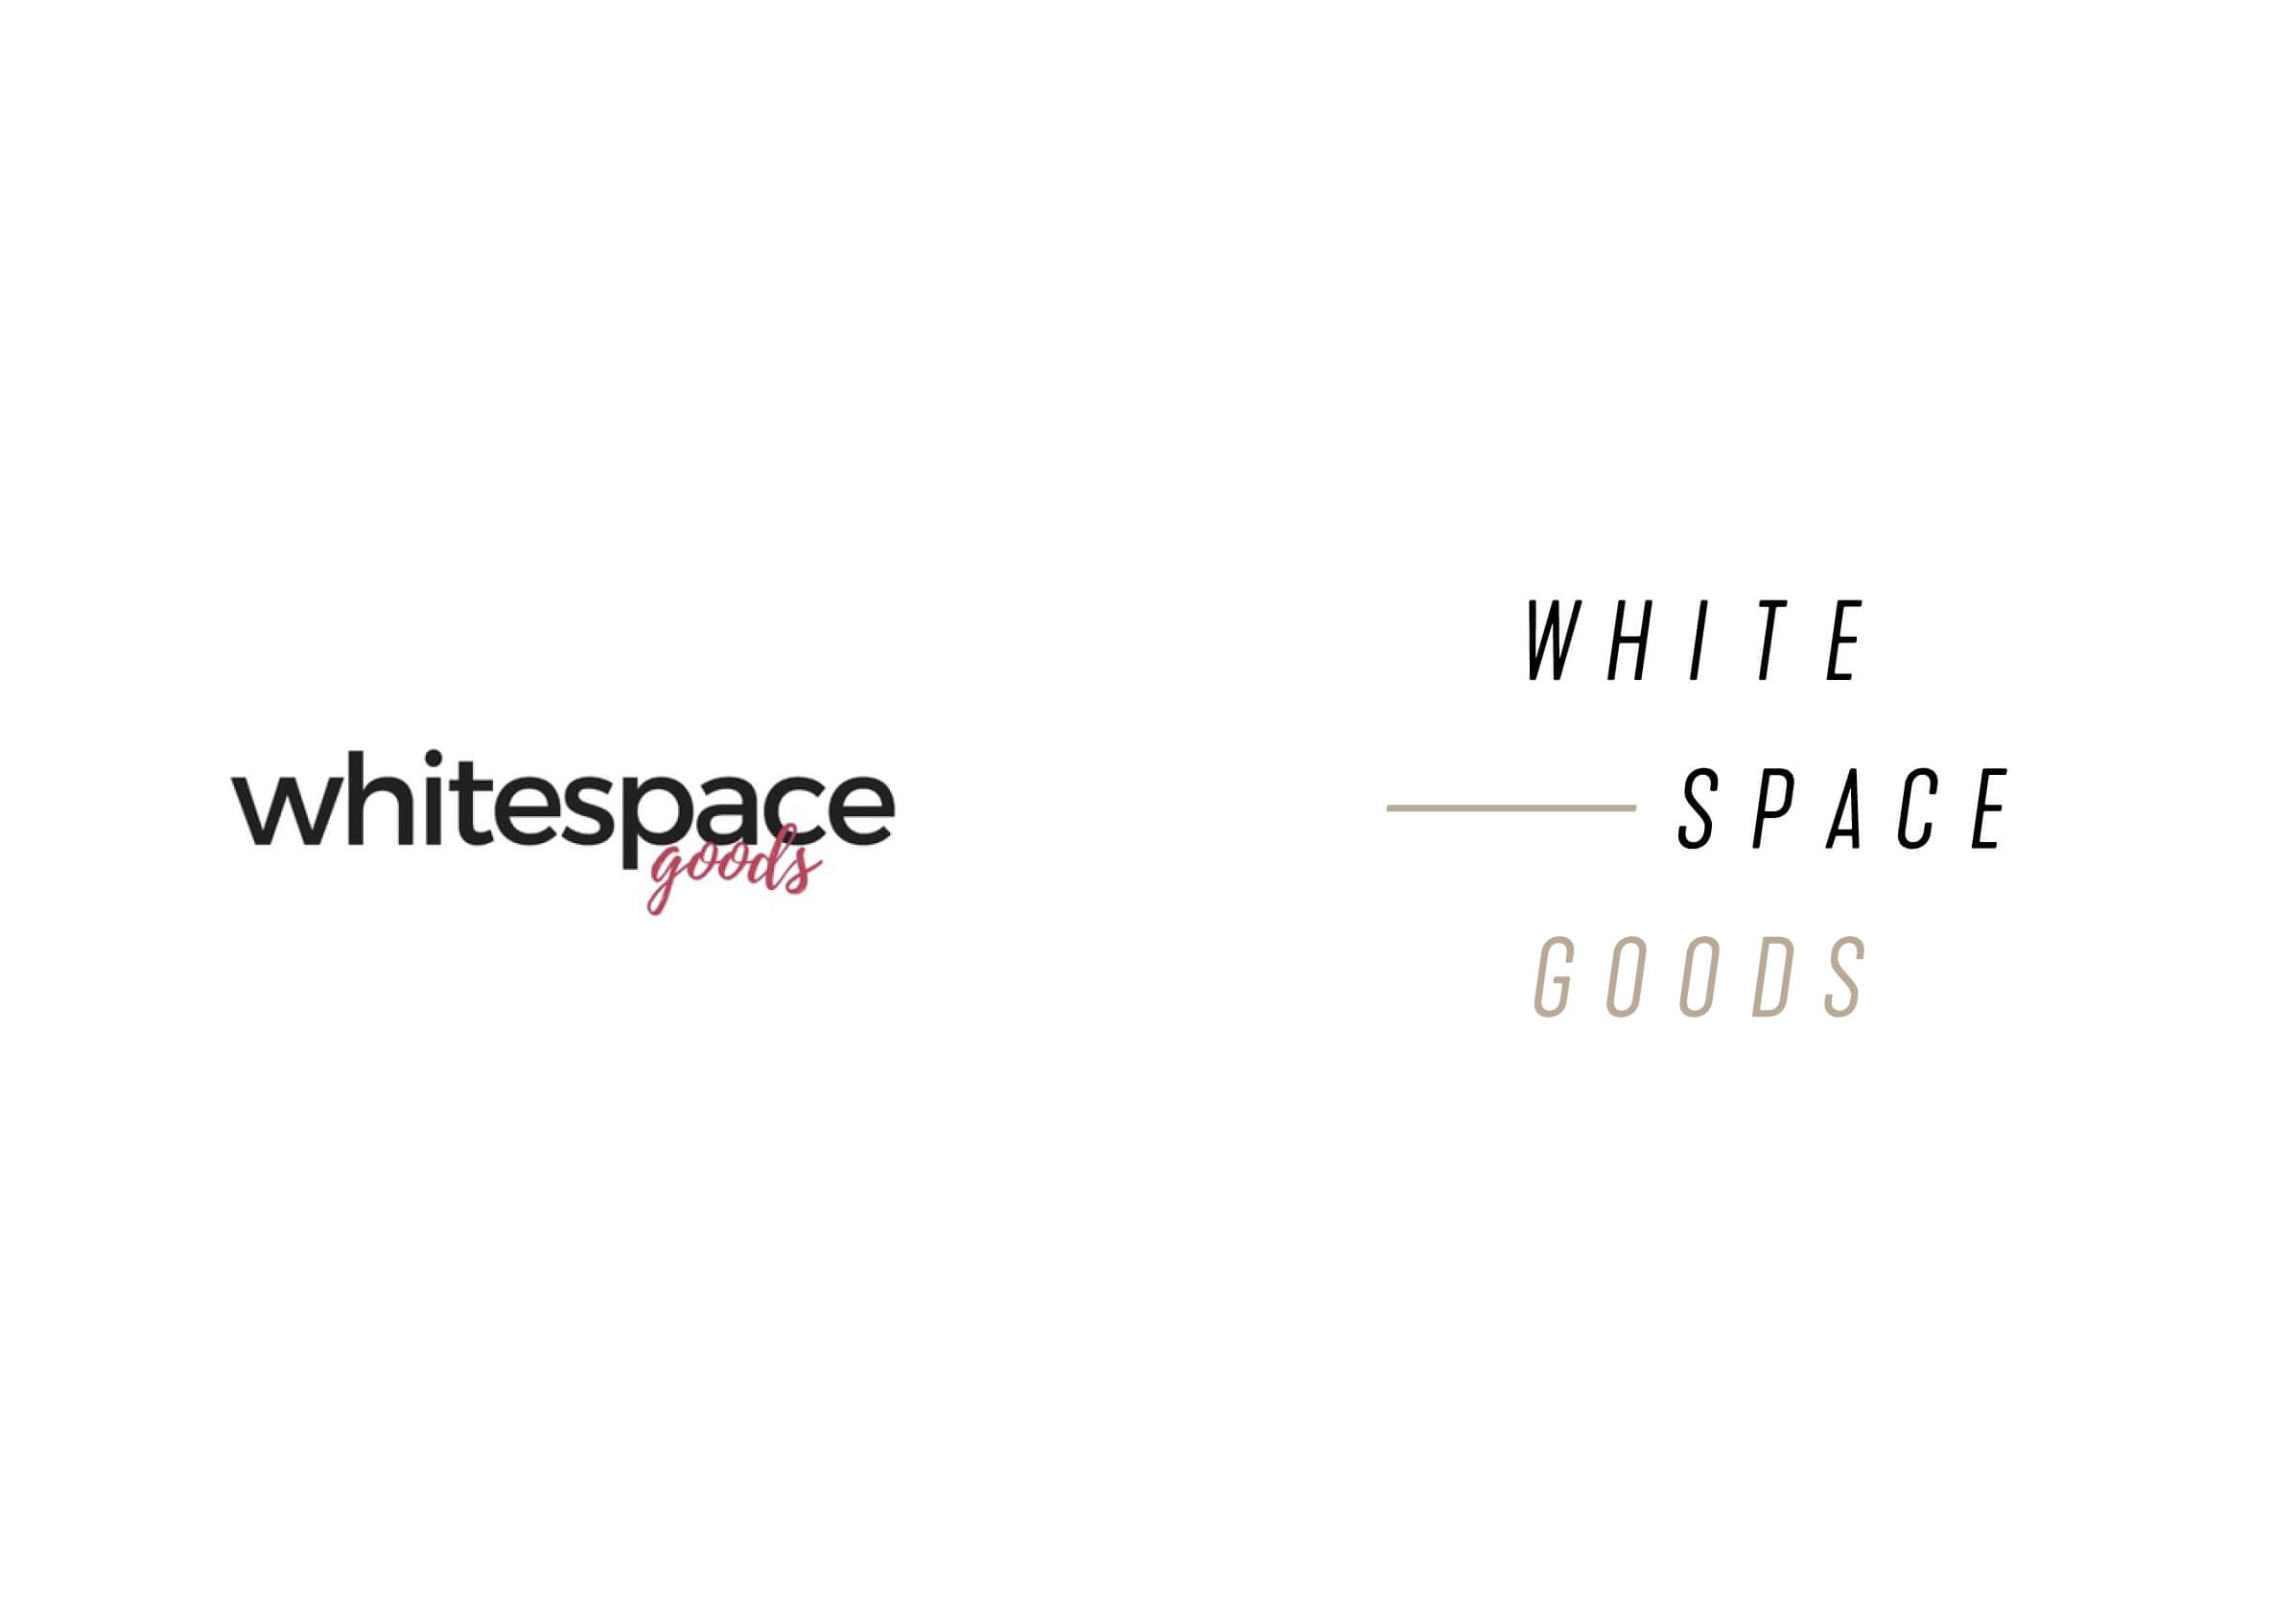 Whitespace Goods before and after logo Ottawa-based handmade knitware and decor by graphic designer idApostle